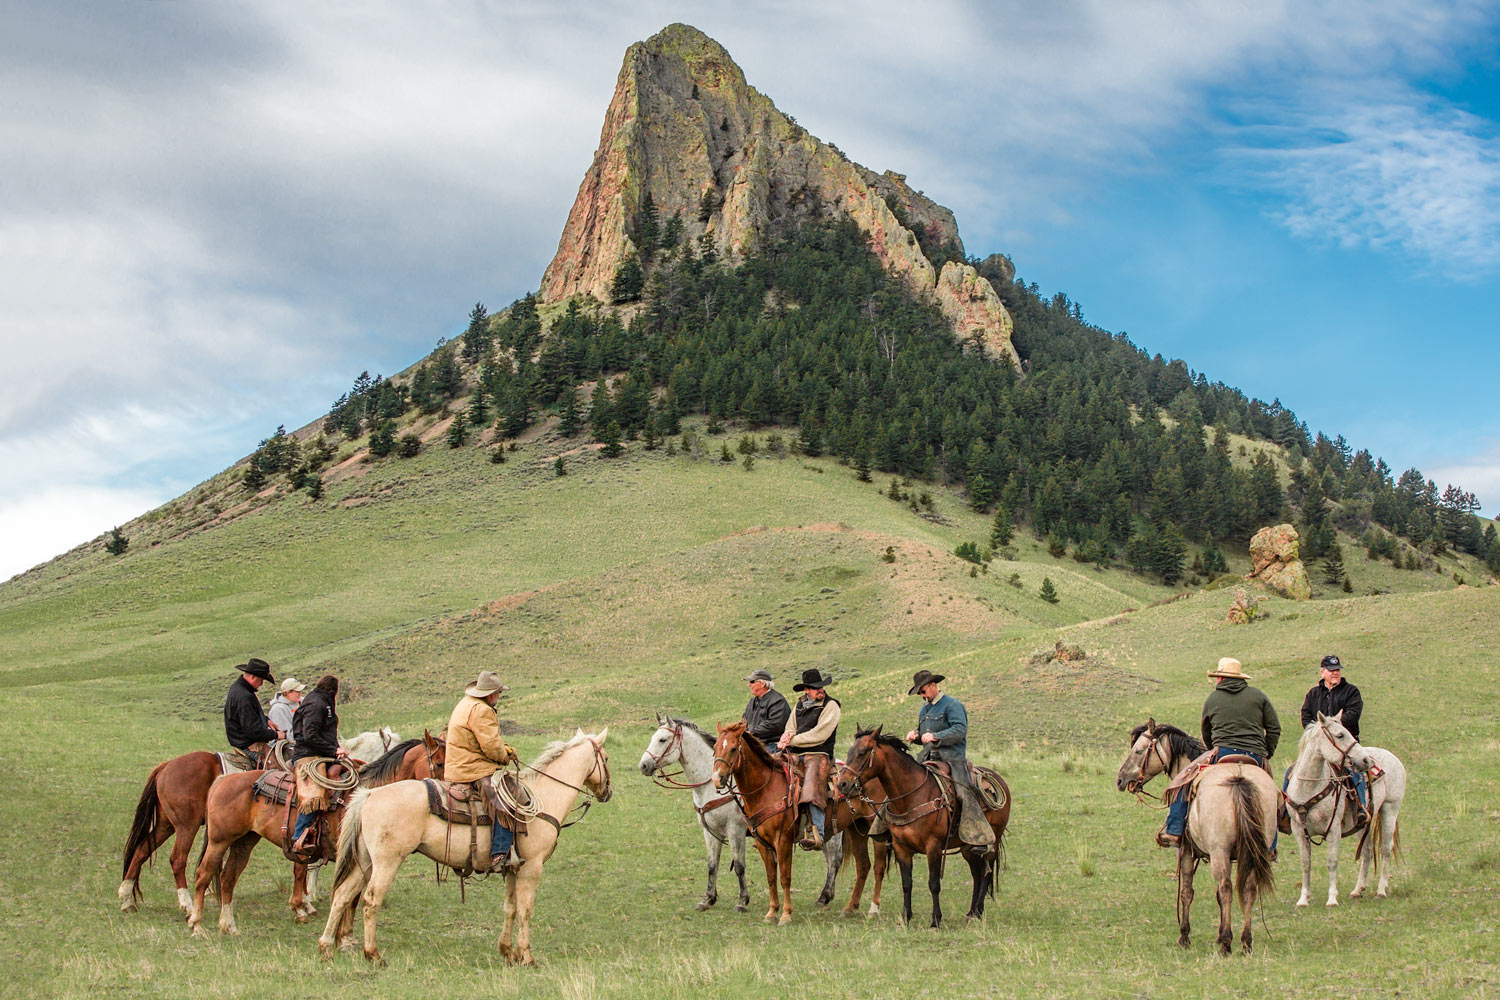 Cowboys and cowgirls gather at the base of Birdtail Butte near Cleveland, Montana.  → License Photo